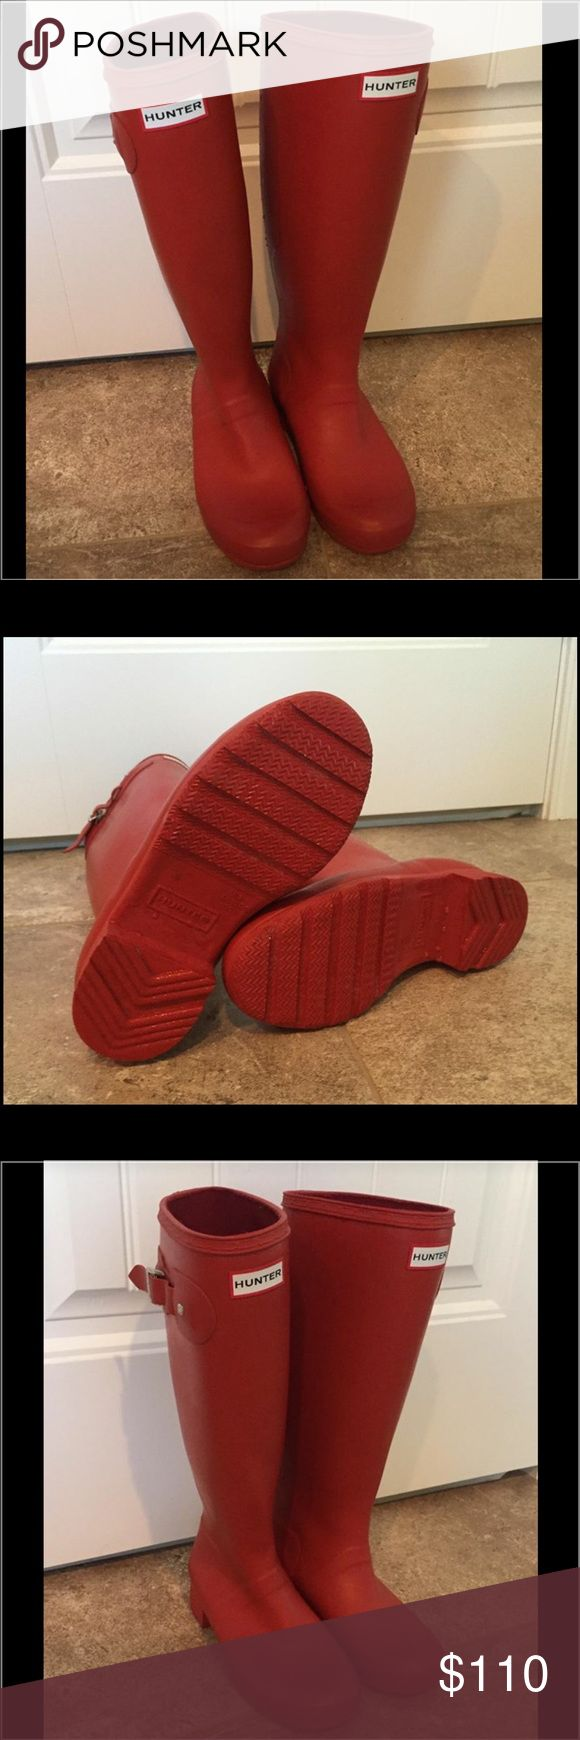 Red Hunter Boots ❤️offers welcome❤️ Excellent condition Red Hunter Boots.  Size 5. Will fit sz 5-6. Smoke free home.  Next day shipping. Please feel free to answer any questions. Thank you for shopping my closet. Offers always welcome❤️ Hunter Boots Shoes Winter & Rain Boots